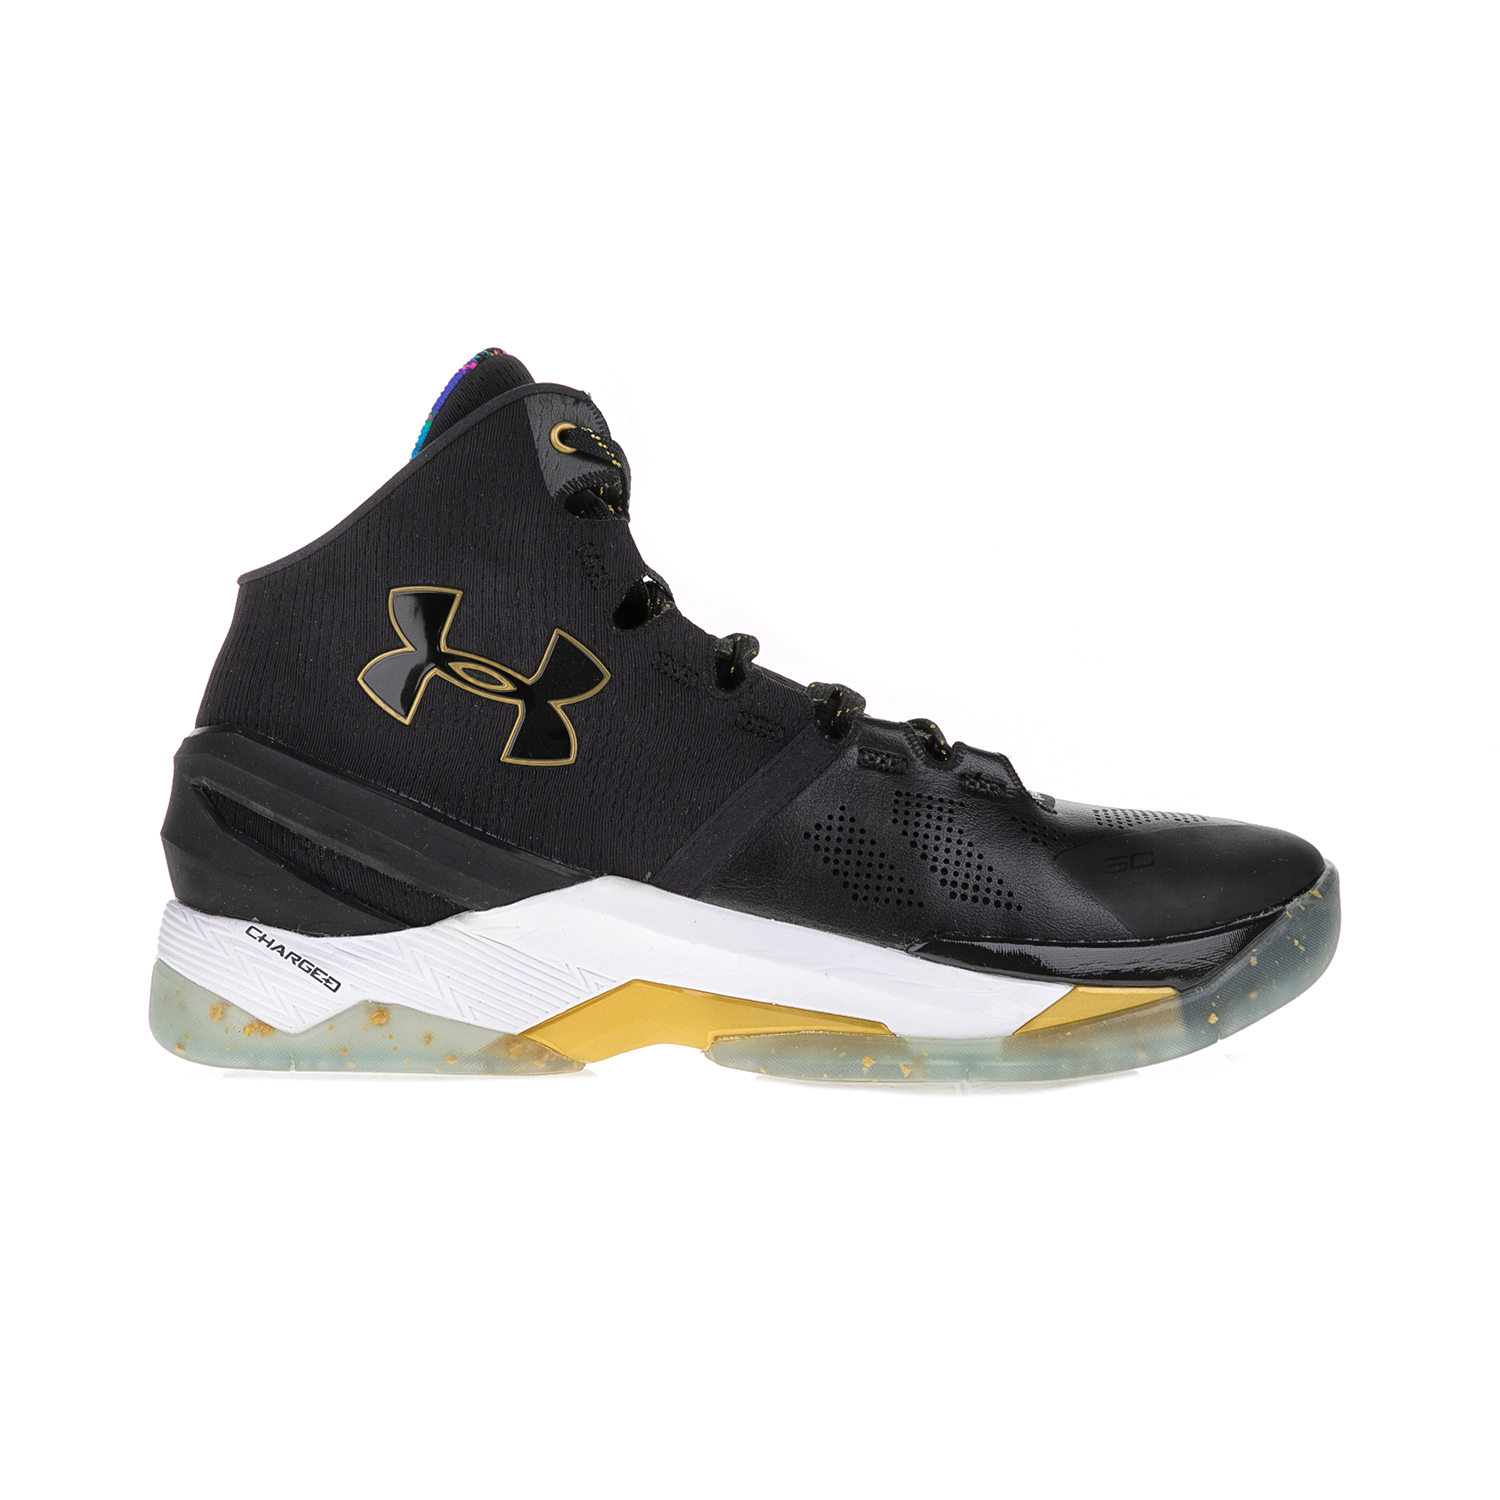 UNDER ARMOUR - Ανδρικά παπούτσια μπάσκετ UNDER ARMOUR CURRY 2 LE μαύρα